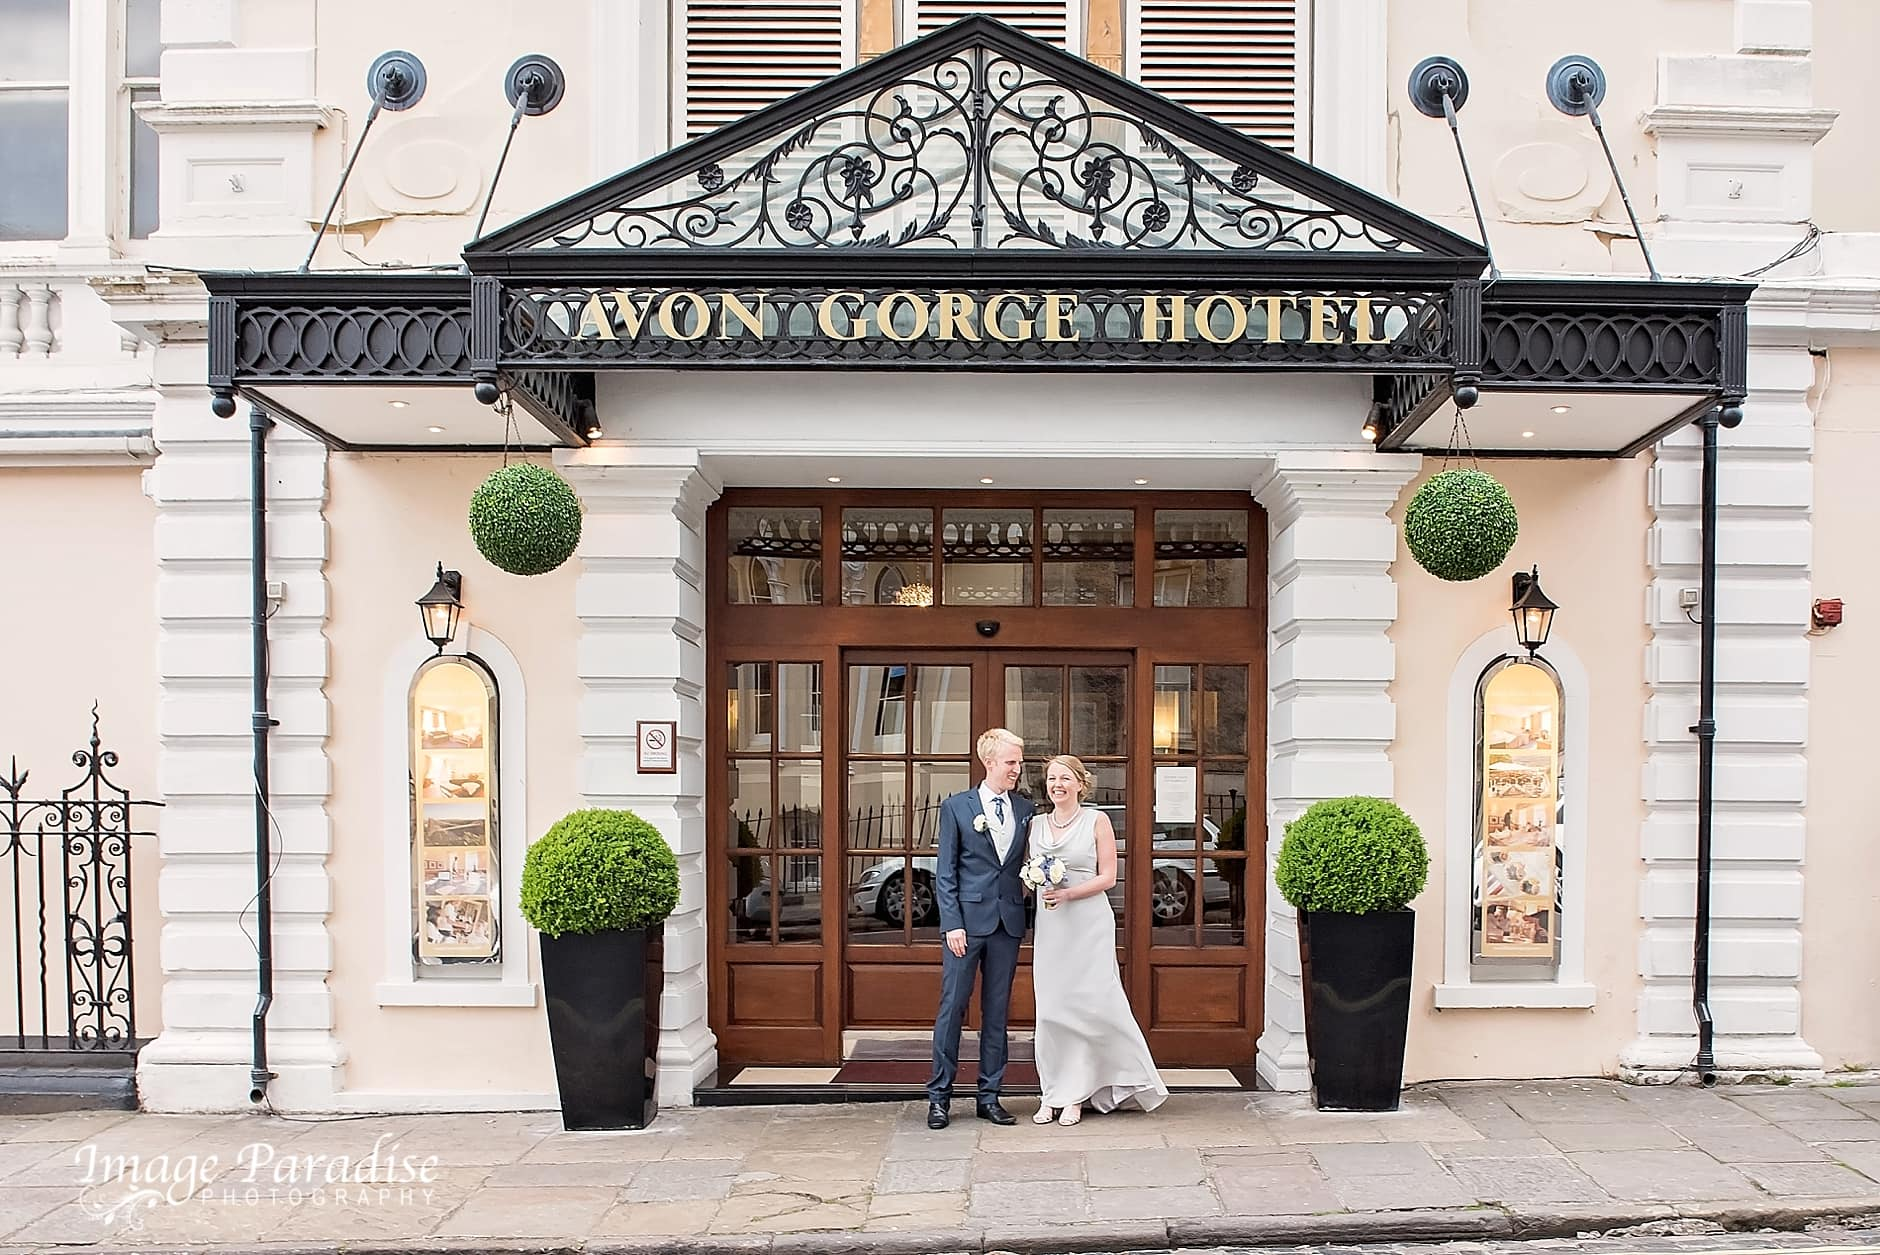 Avon Gorge Hotel wedding, Bristol